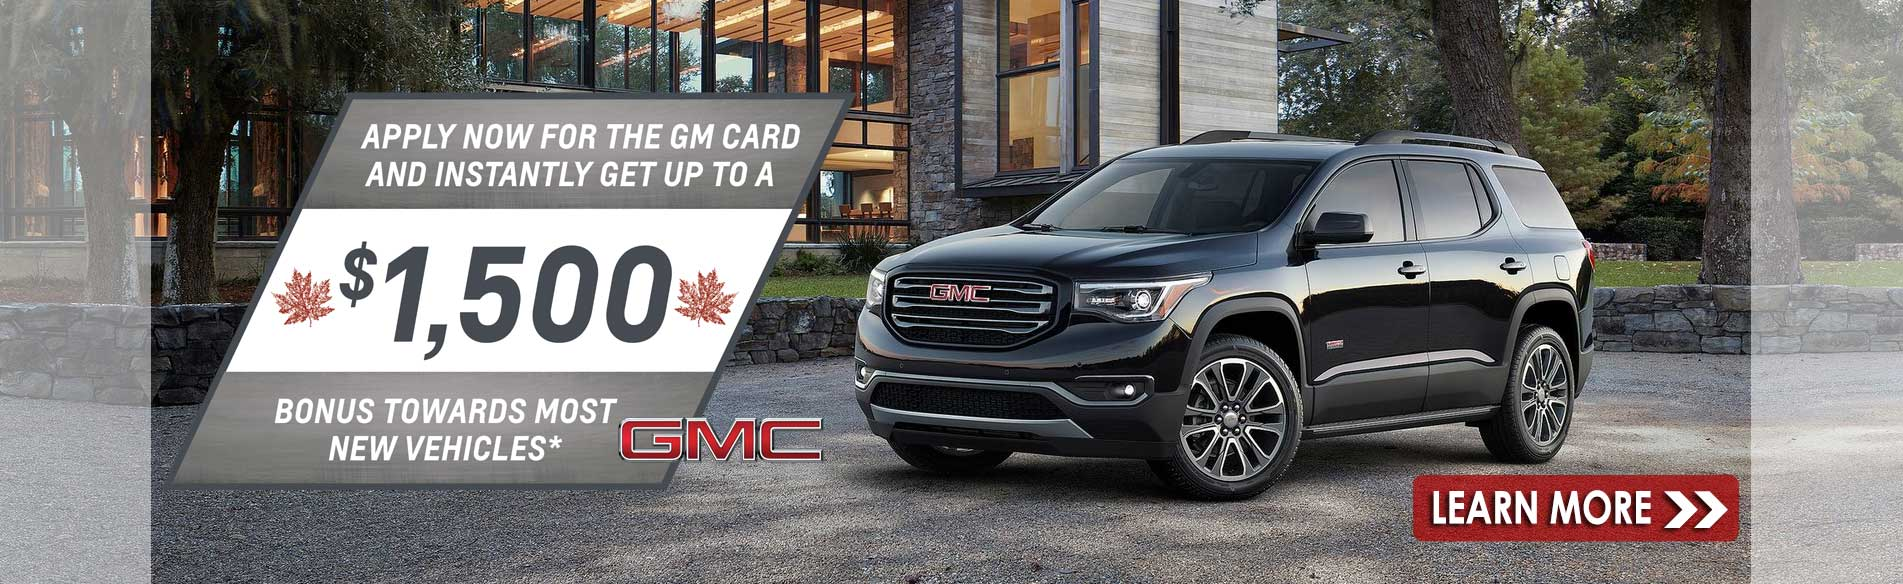 Great deals on new GMC trucks and SUVs in Georgetown Ontario at Georgetown GMC